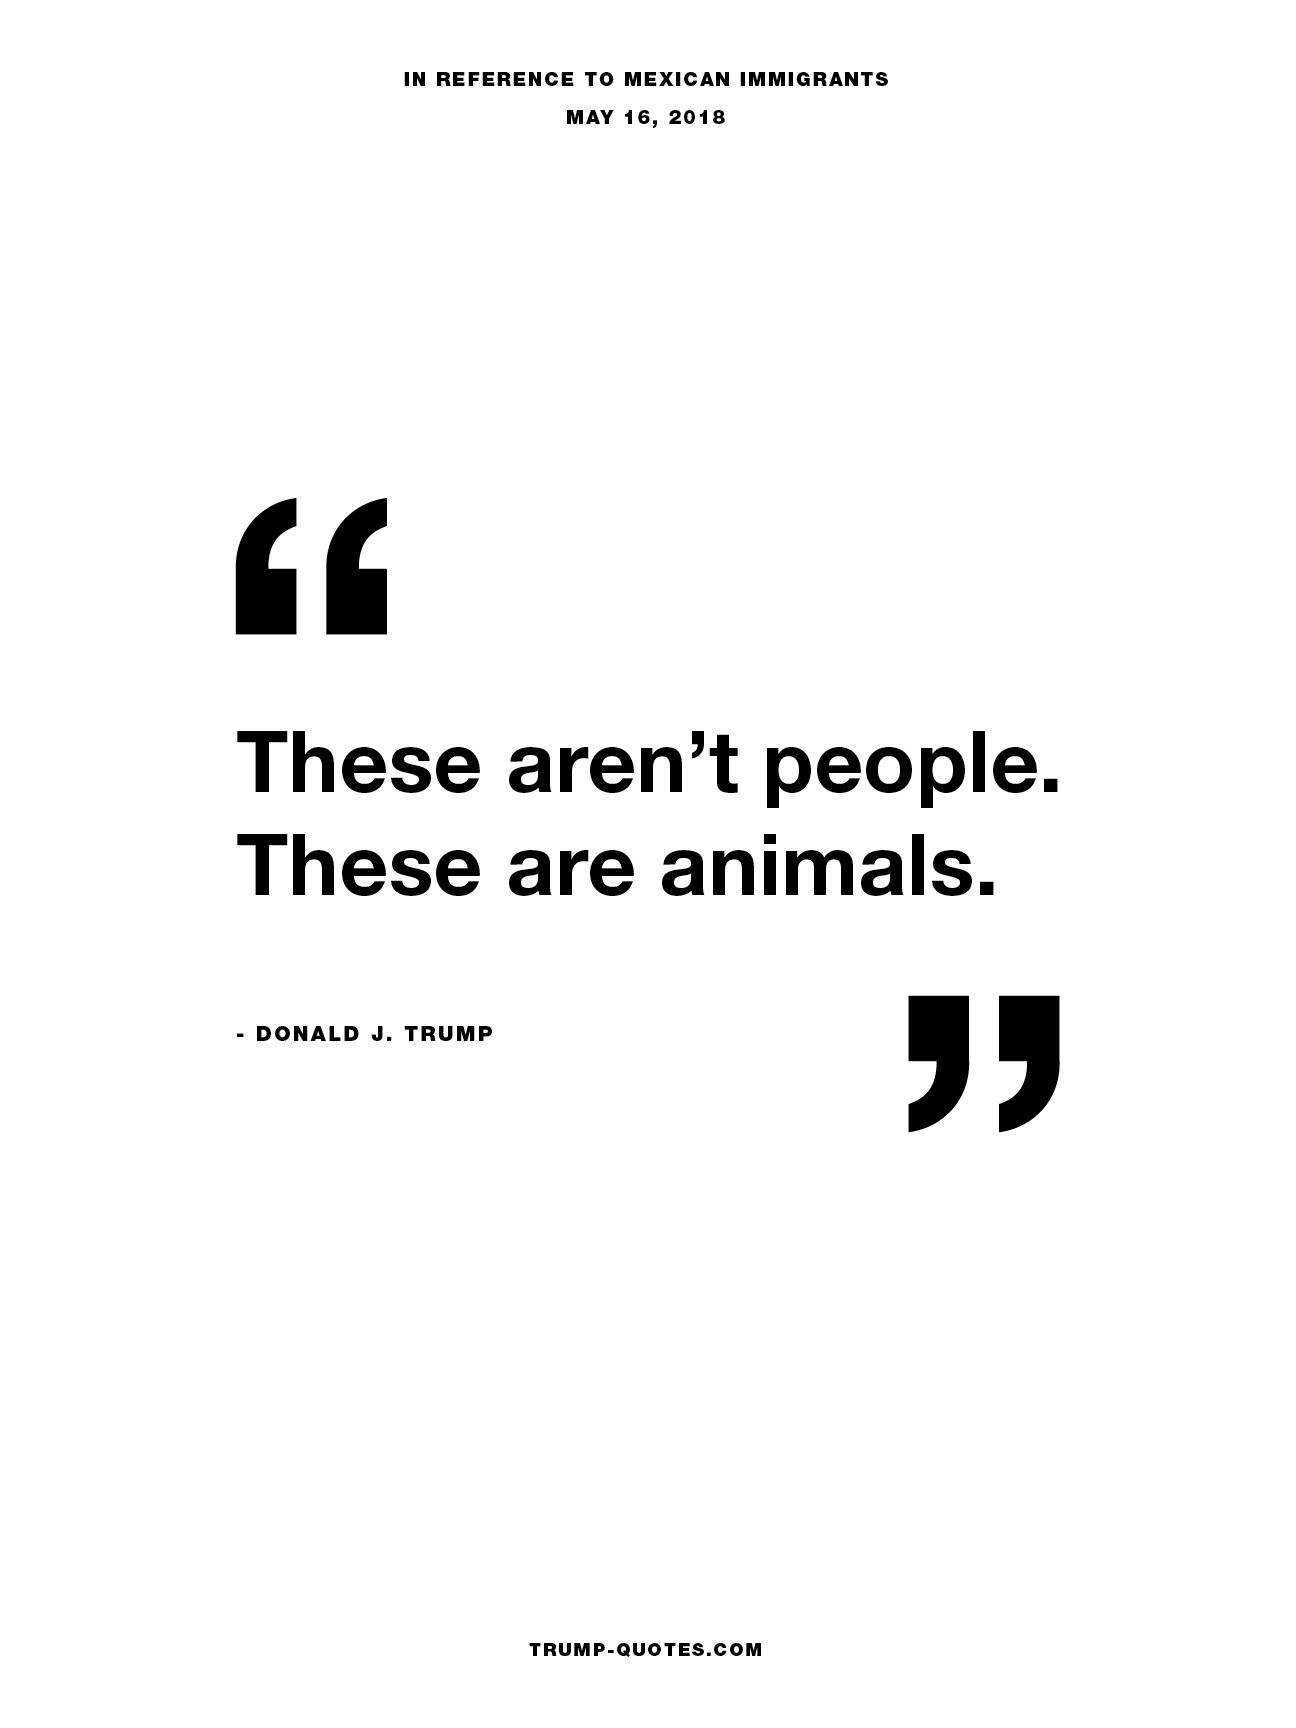 These aren't people.  These are animals.